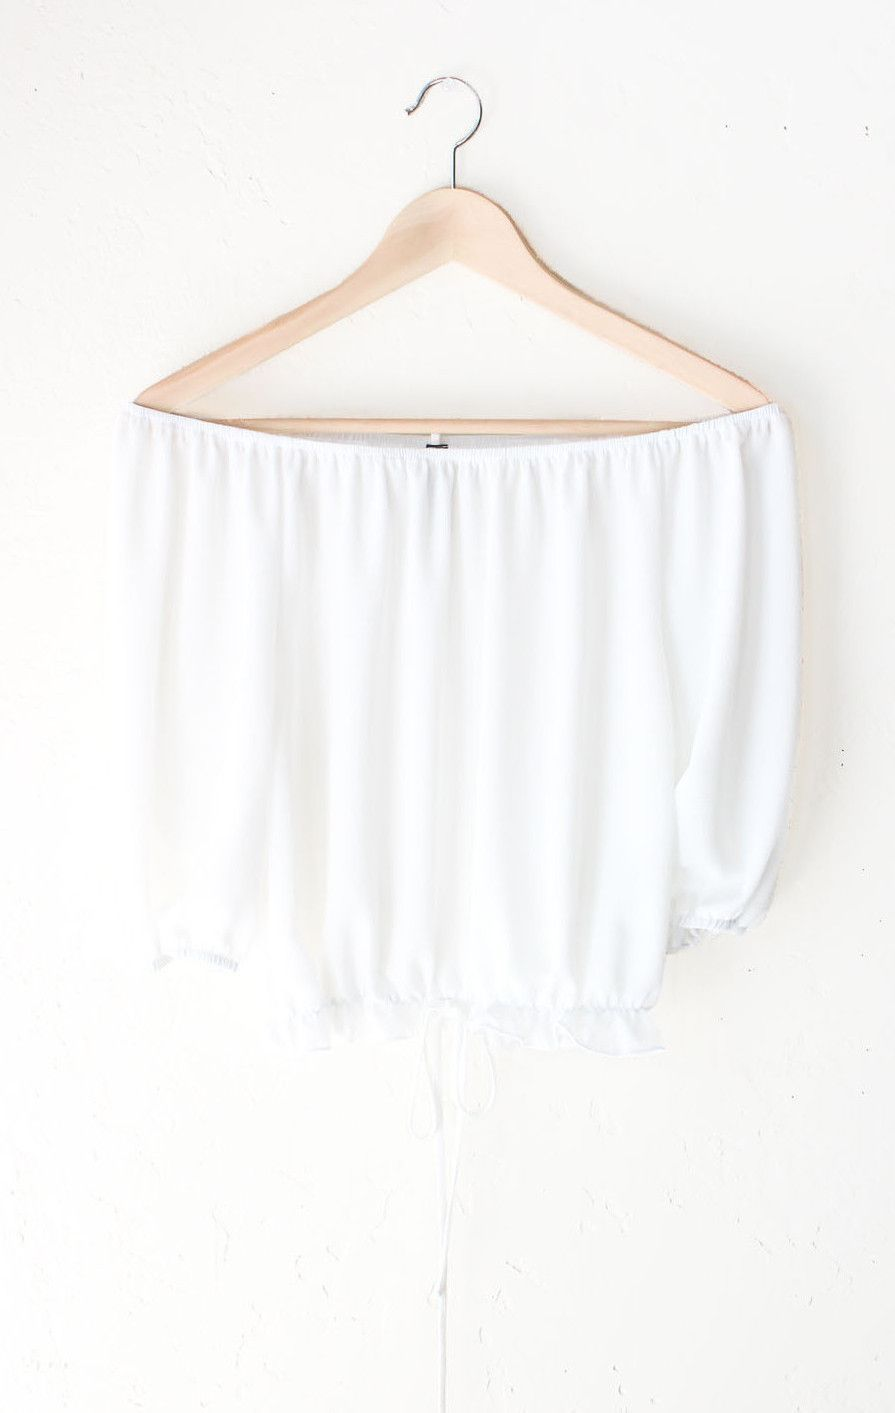 White apron osrs - Description Details Off The Shoulder Half Sleeves Crop Top In White Featuring